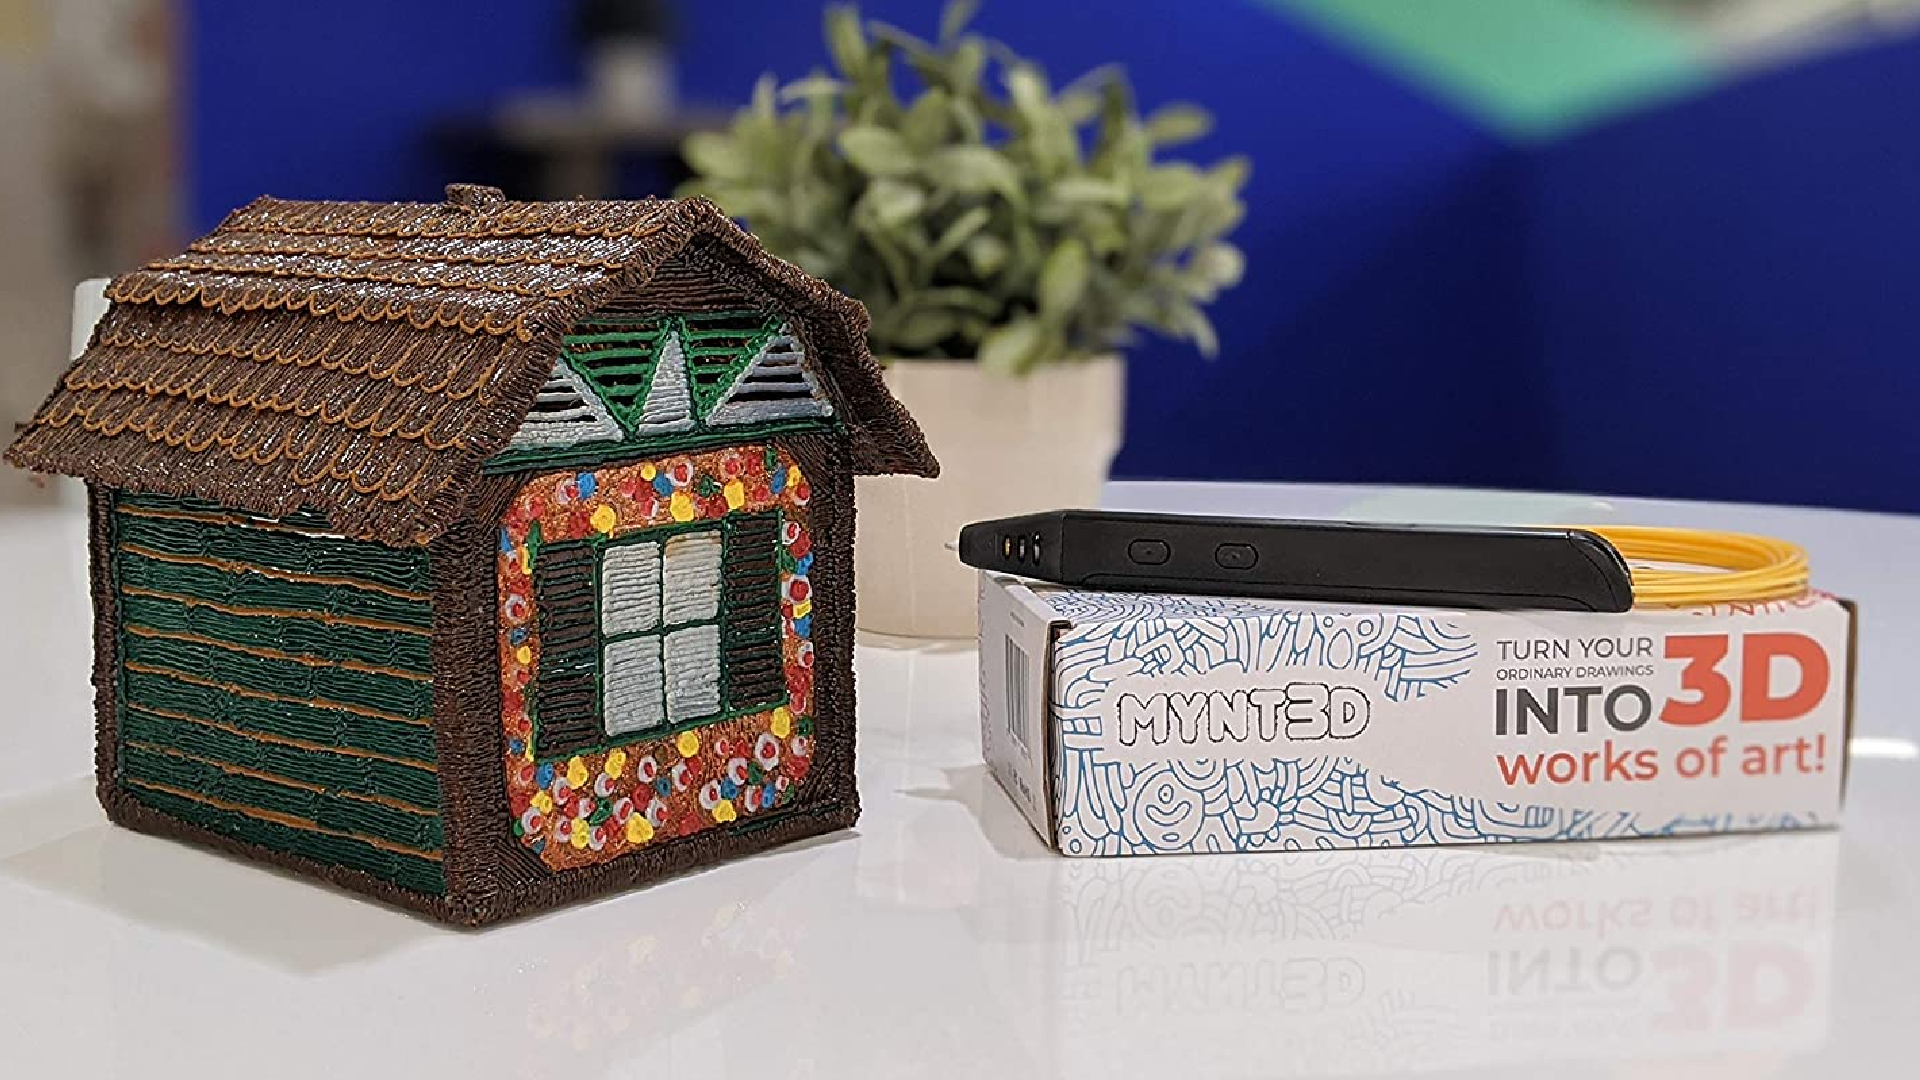 a house drawn with a 3D pen and the box with stylus on top of it